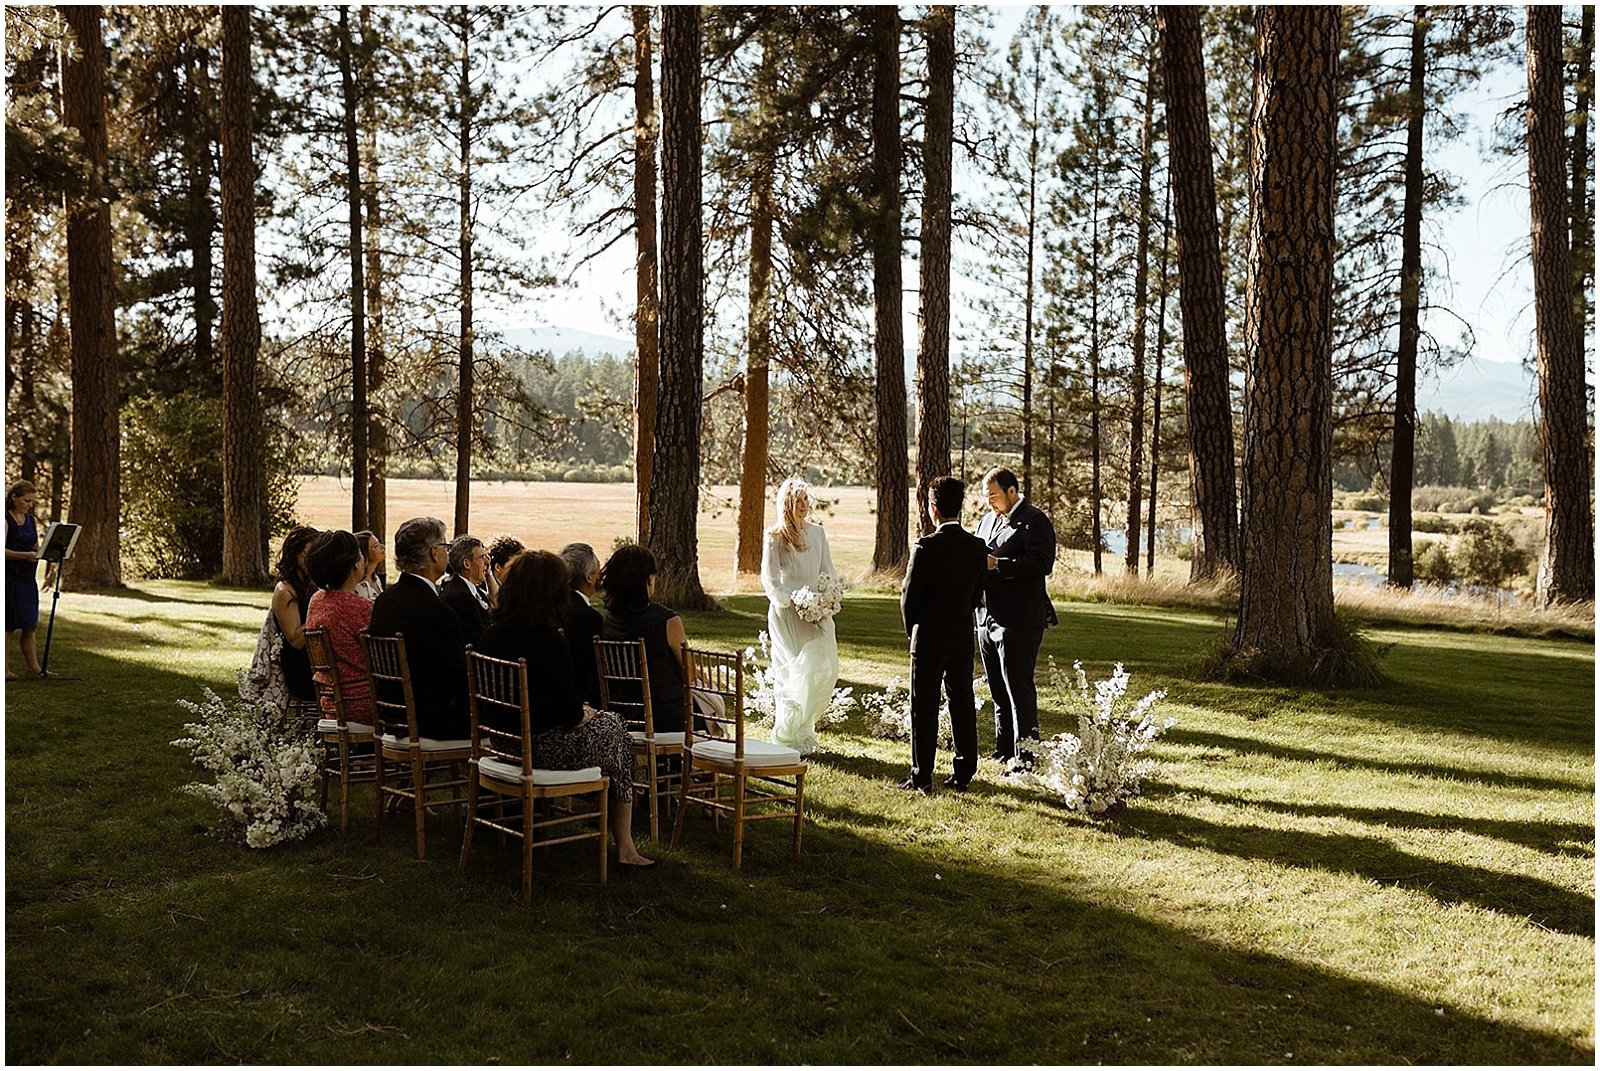 bride and groom exchanging vows, white and blush floral arrangements at ceremony location for an Oregon Wedding at House on Metolius